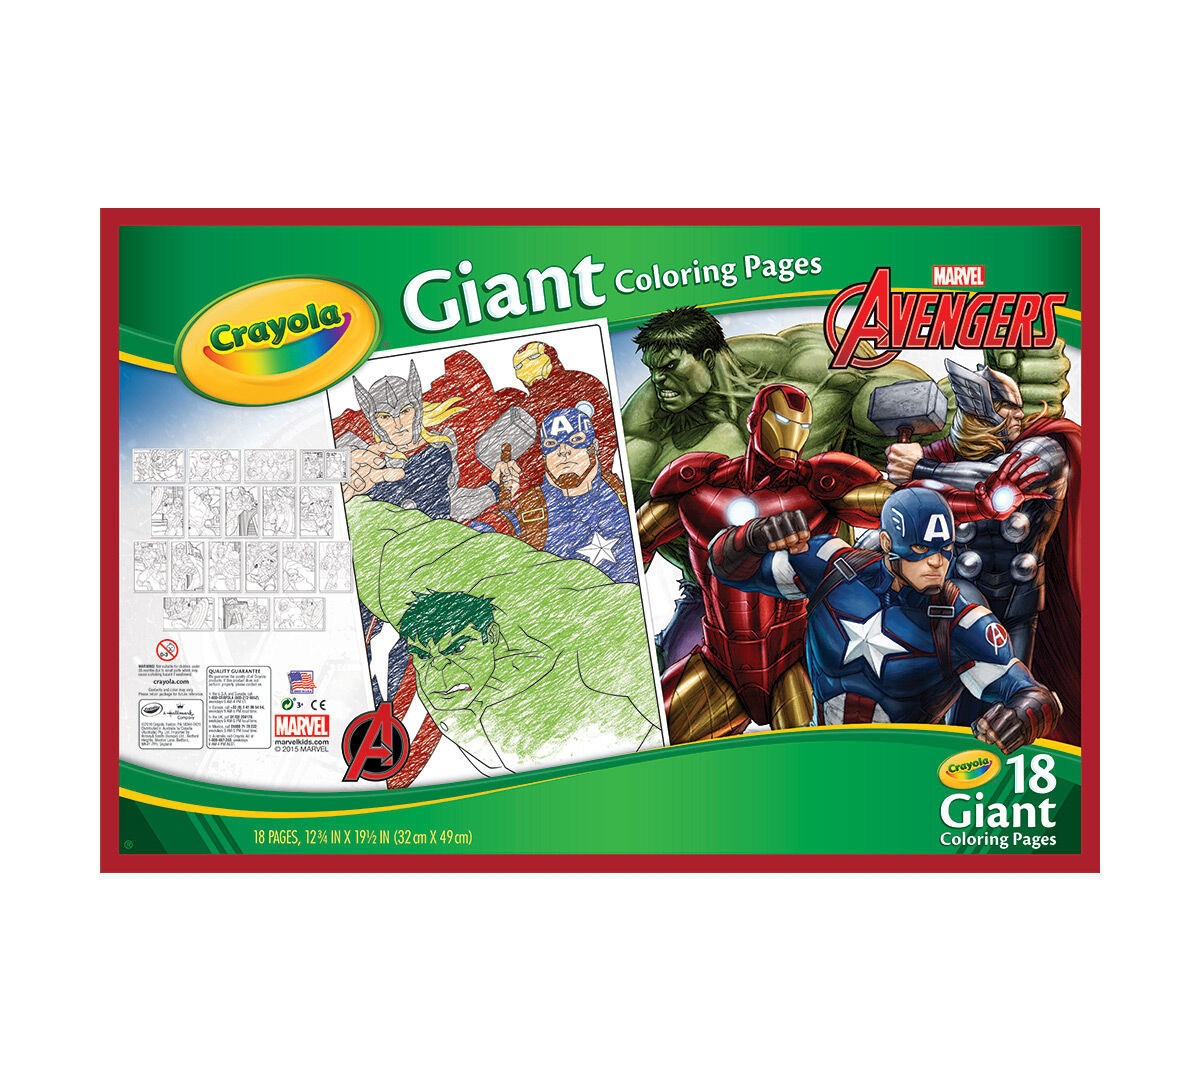 Giant Coloring Pages, Avengers Assemble - Crayola